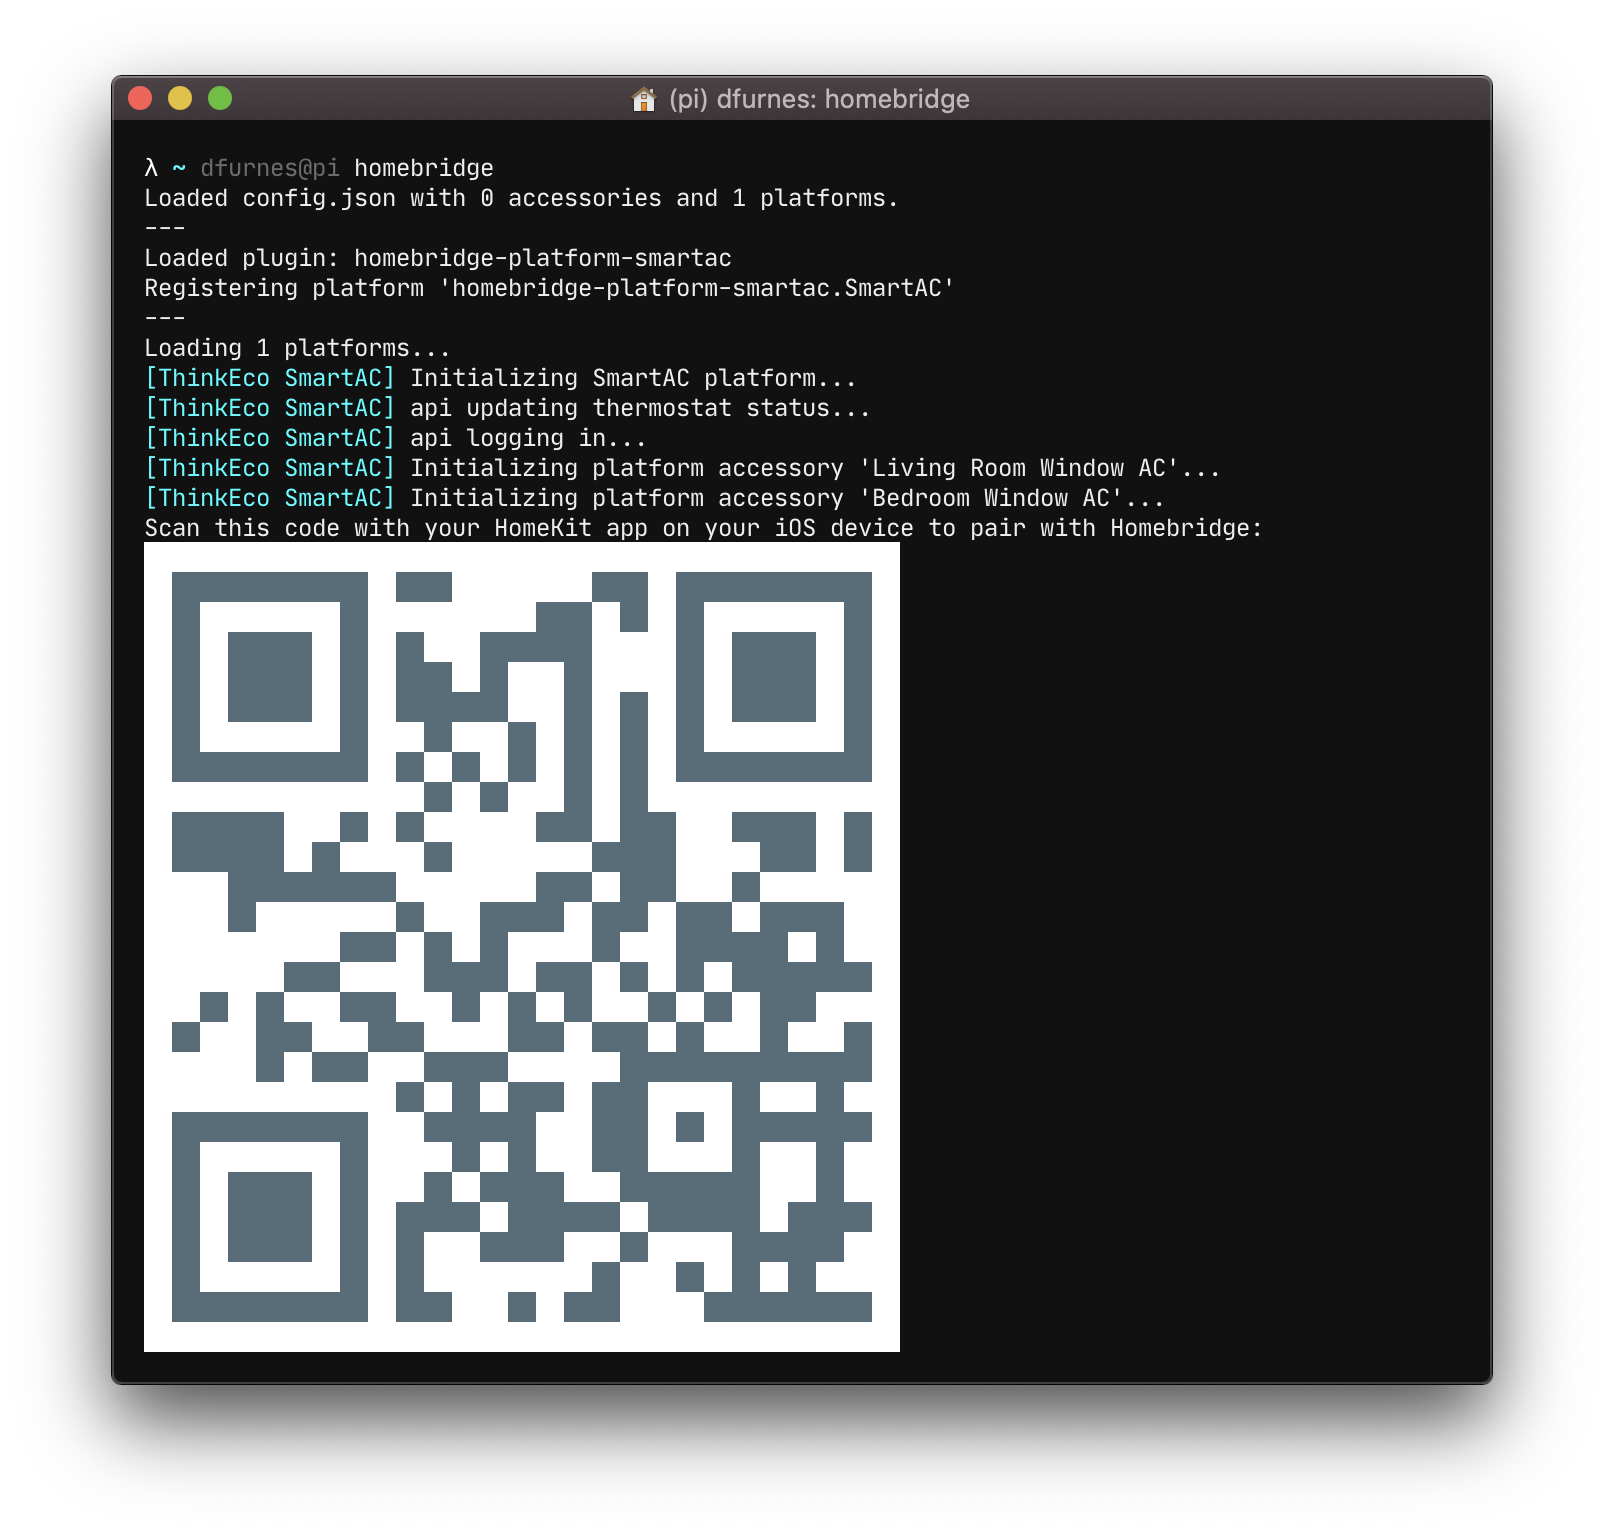 Running 'homebridge' from the terminal